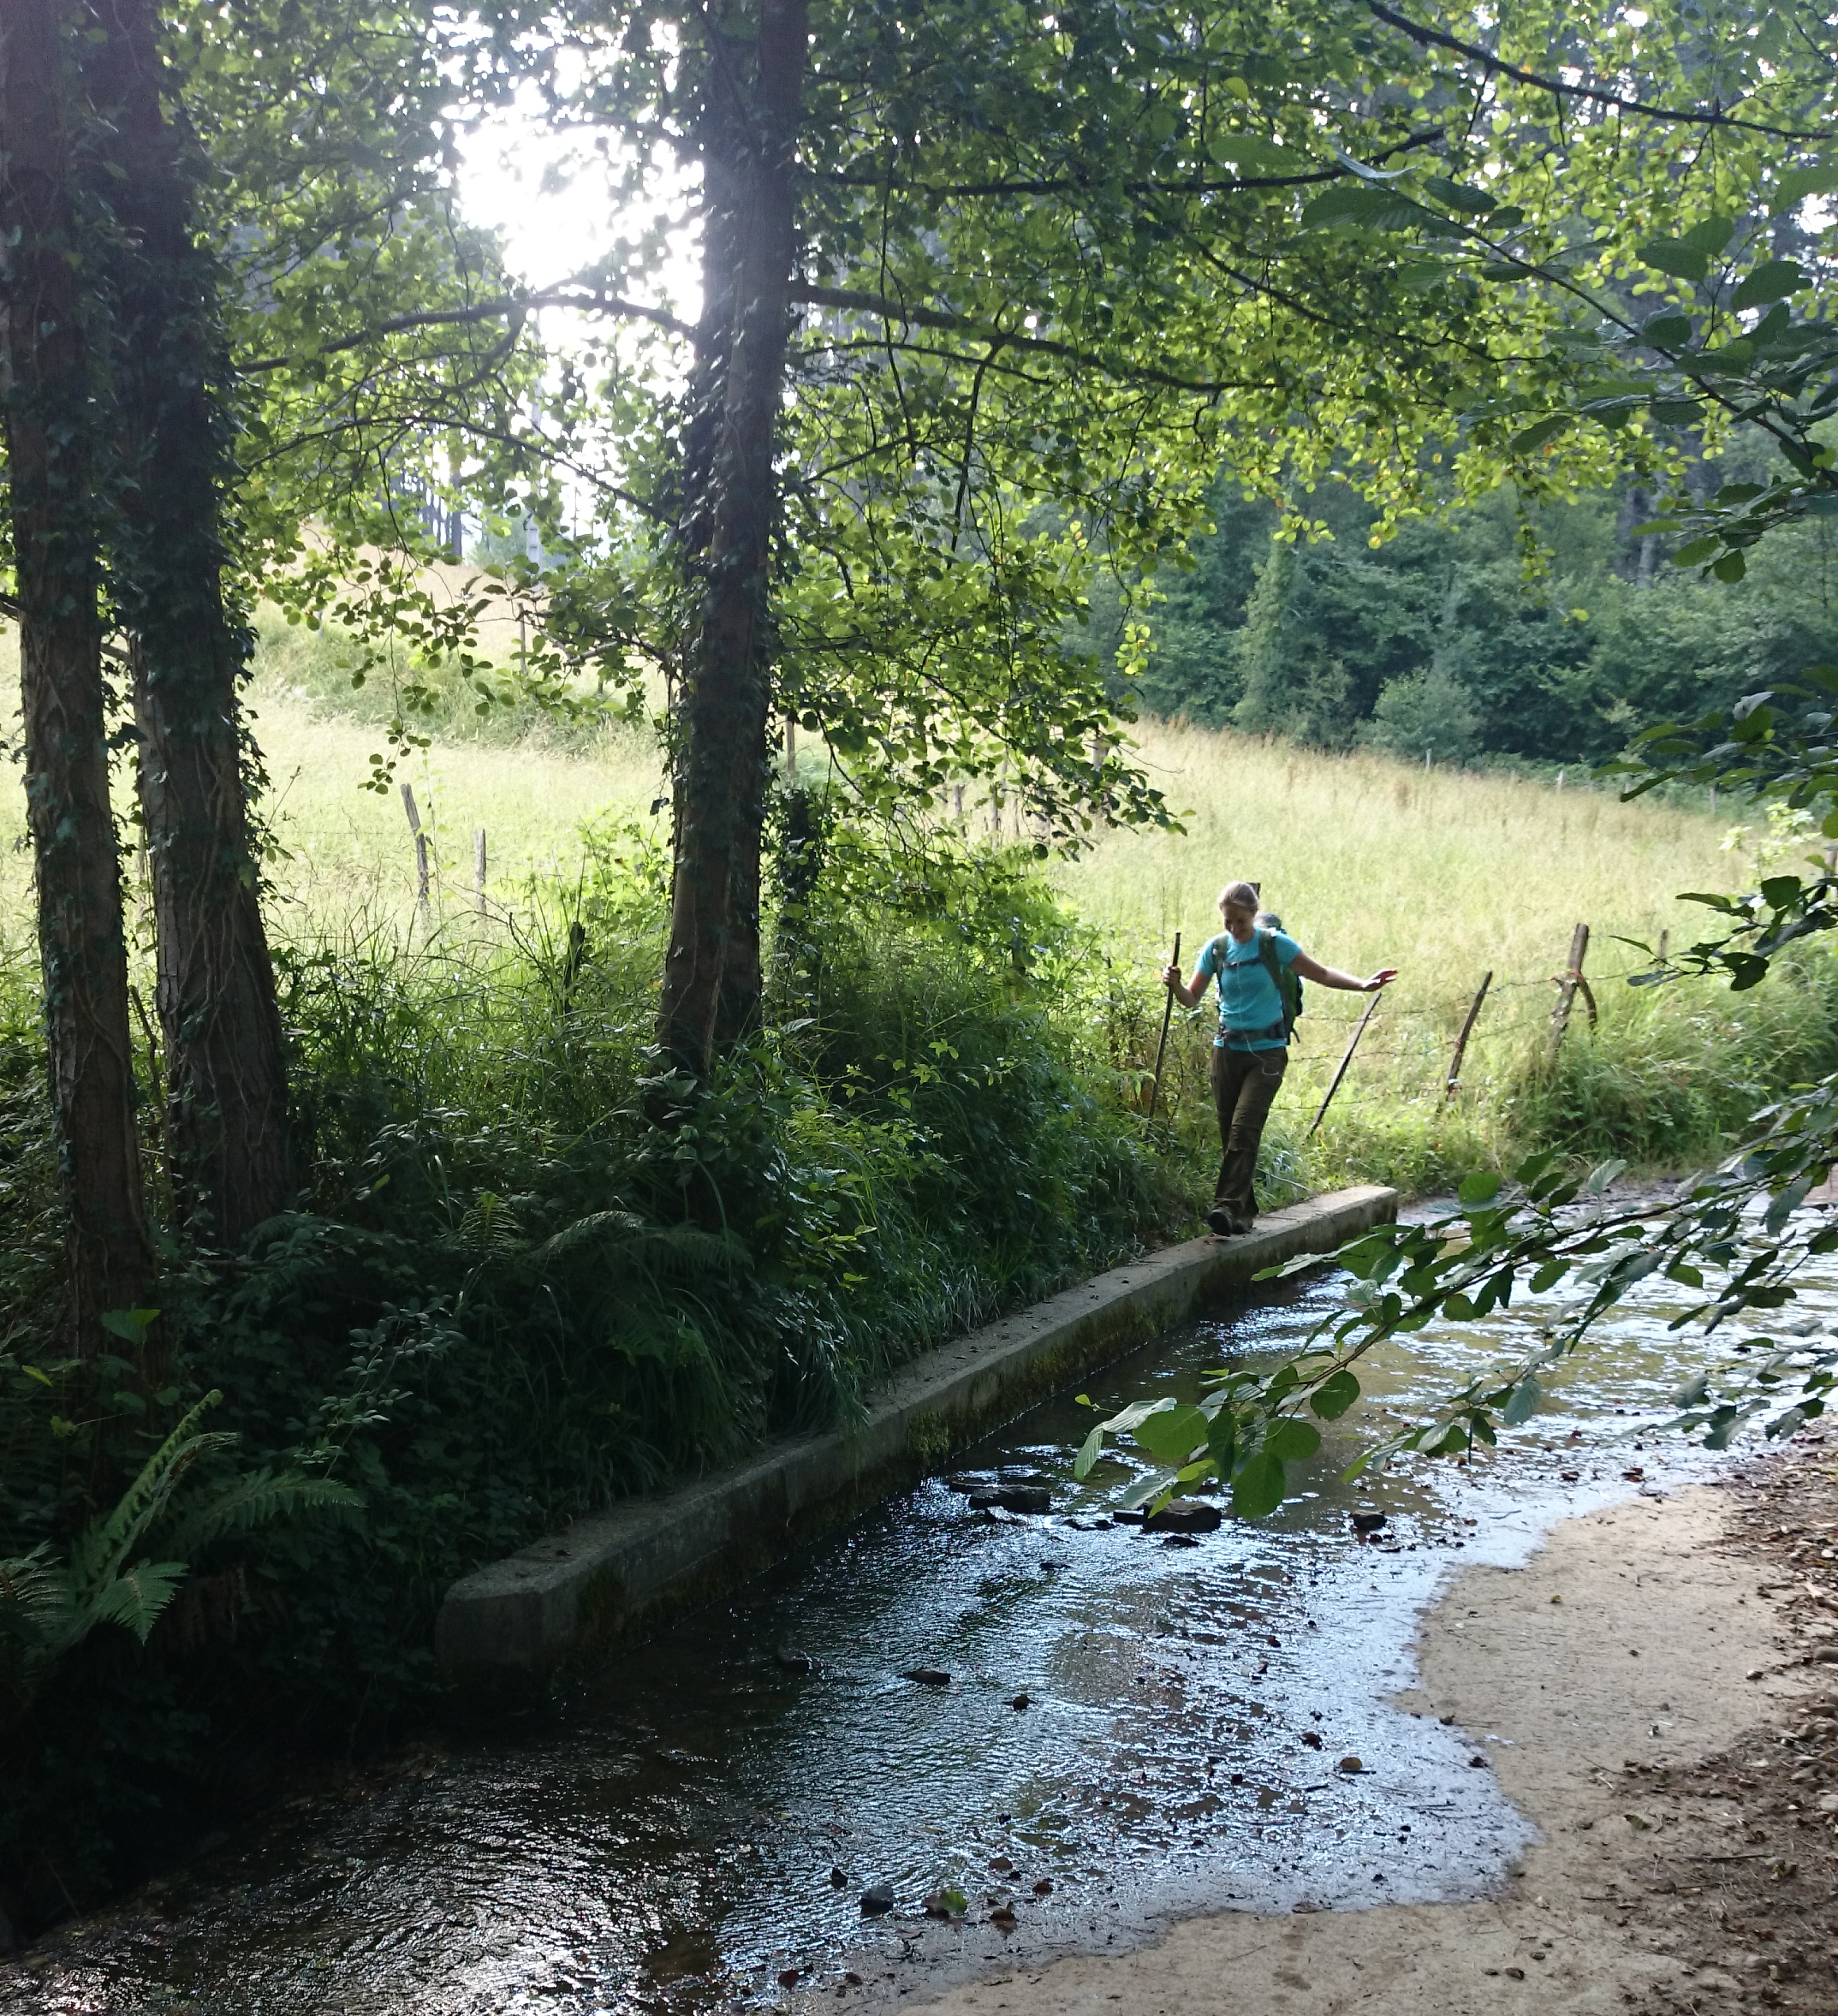 Crossing water on the Camino del Norte